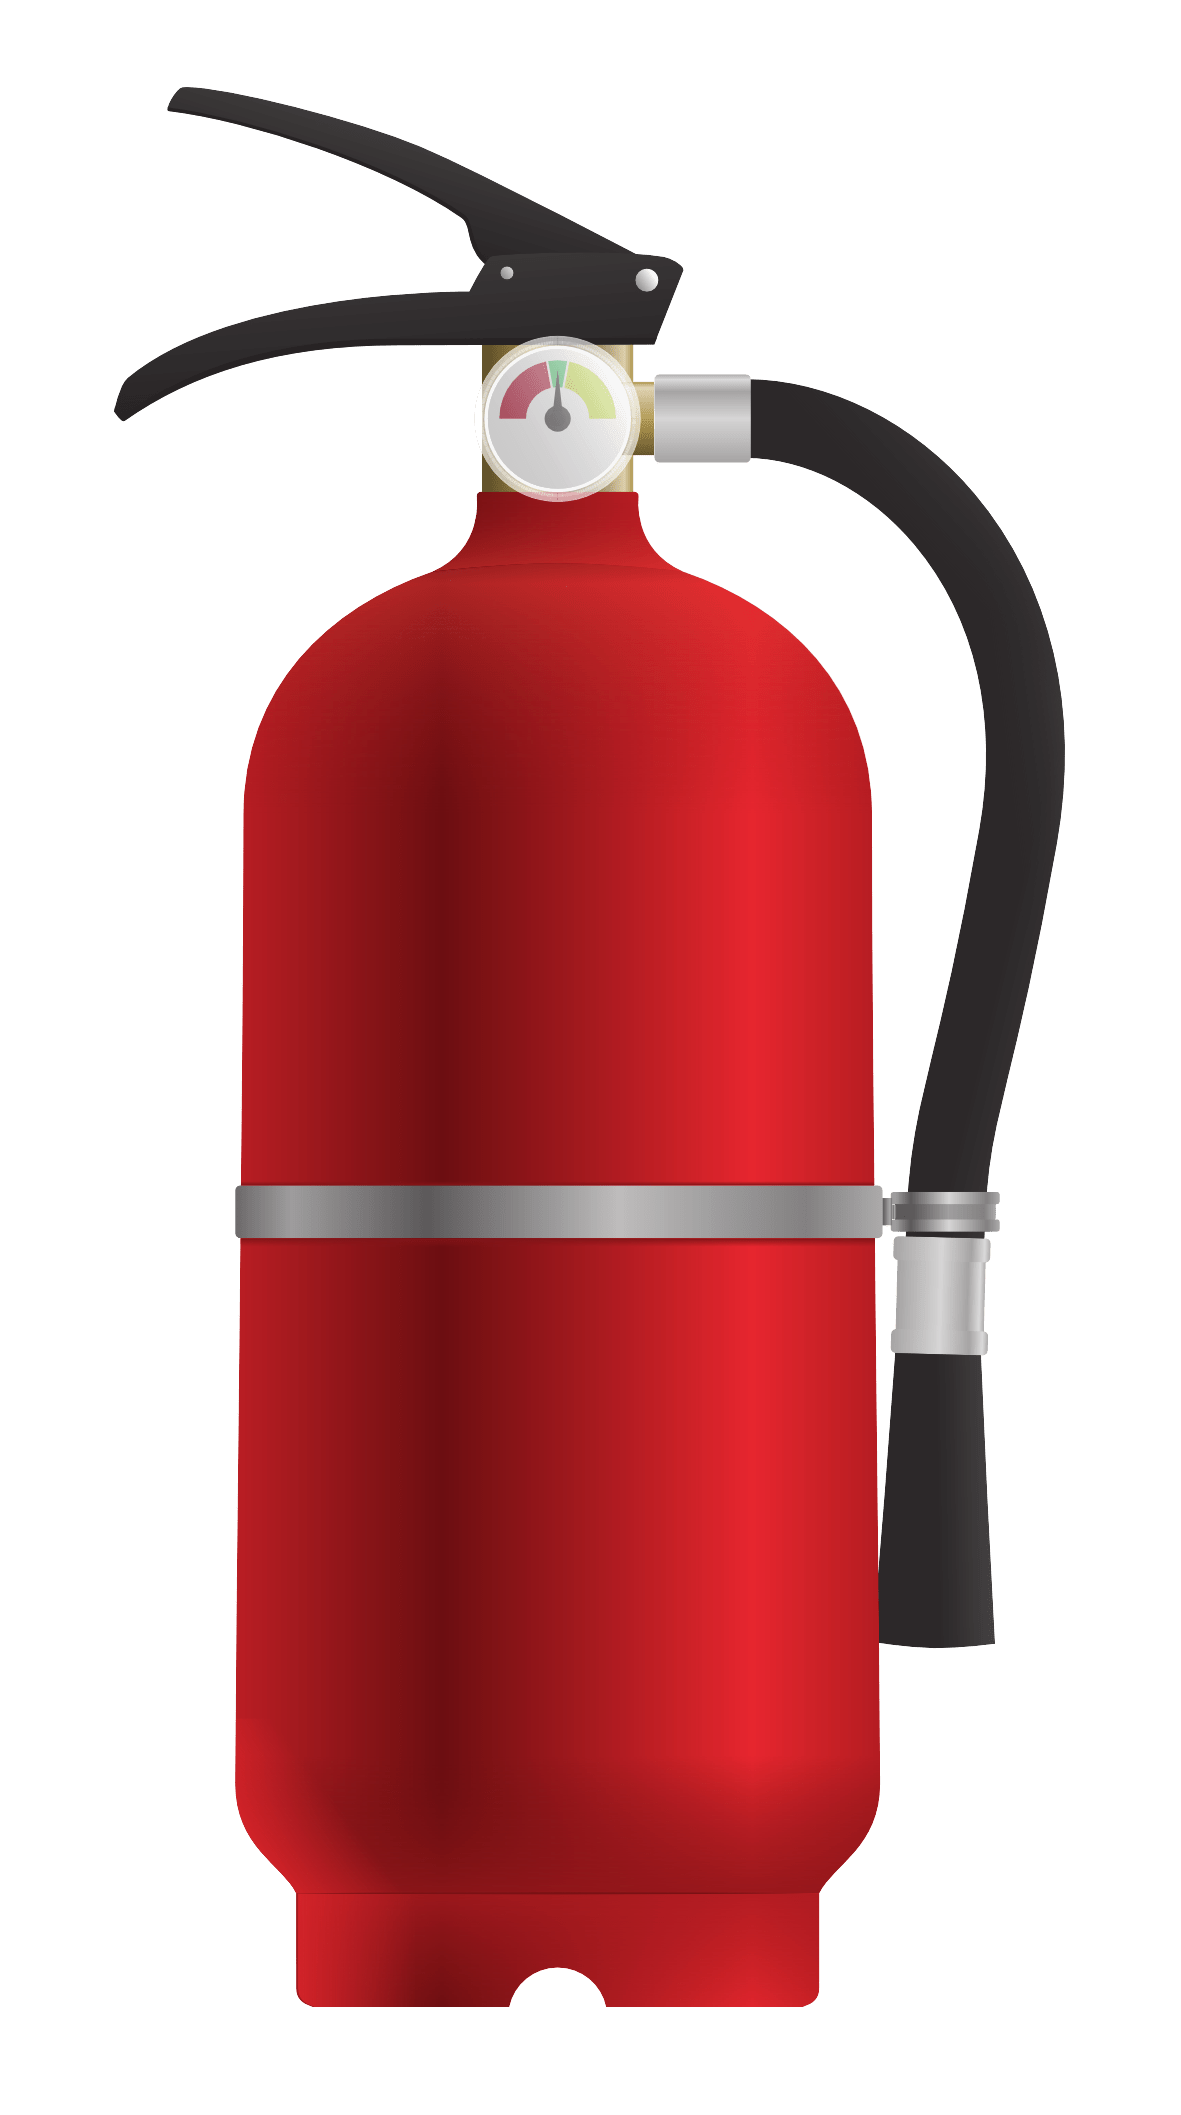 hight resolution of extinguisher clipart fire protection png images free download